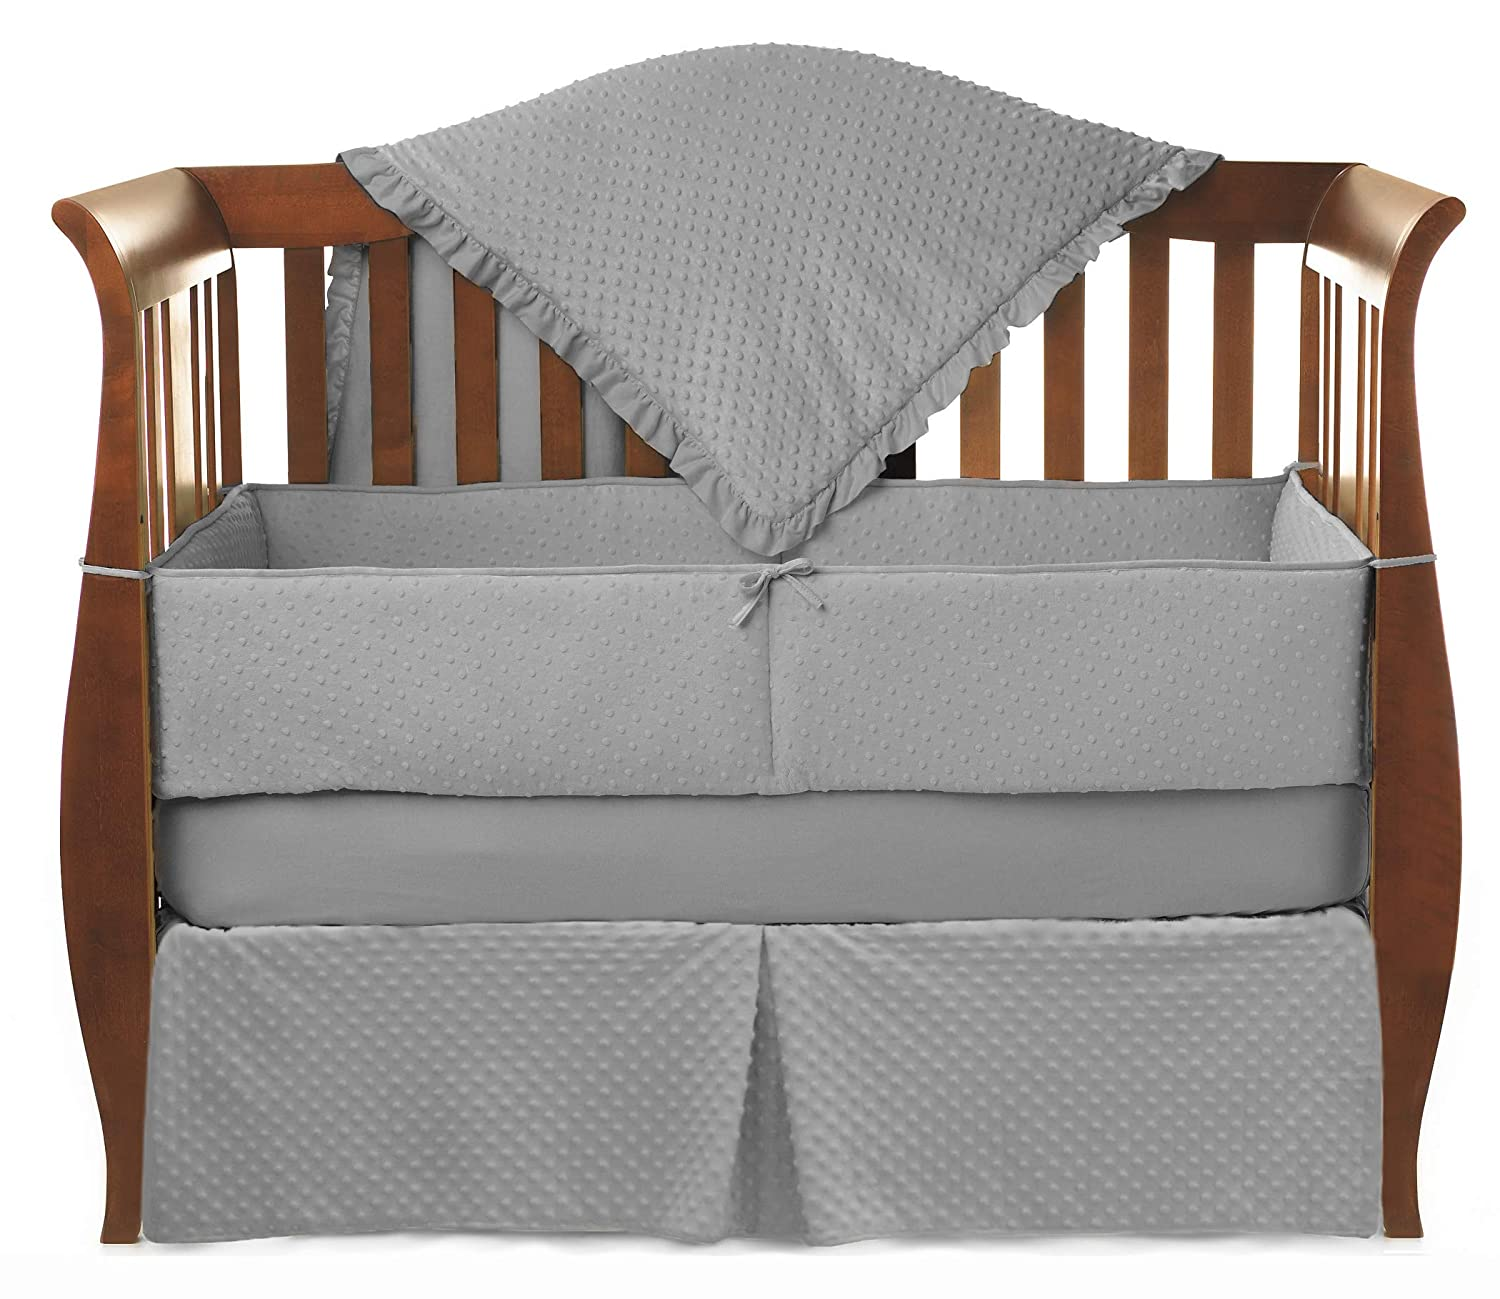 American Baby Company Heavenly Soft Minky Dot 4-Piece Crib Bedding Set, Gray, for Boys and Girls